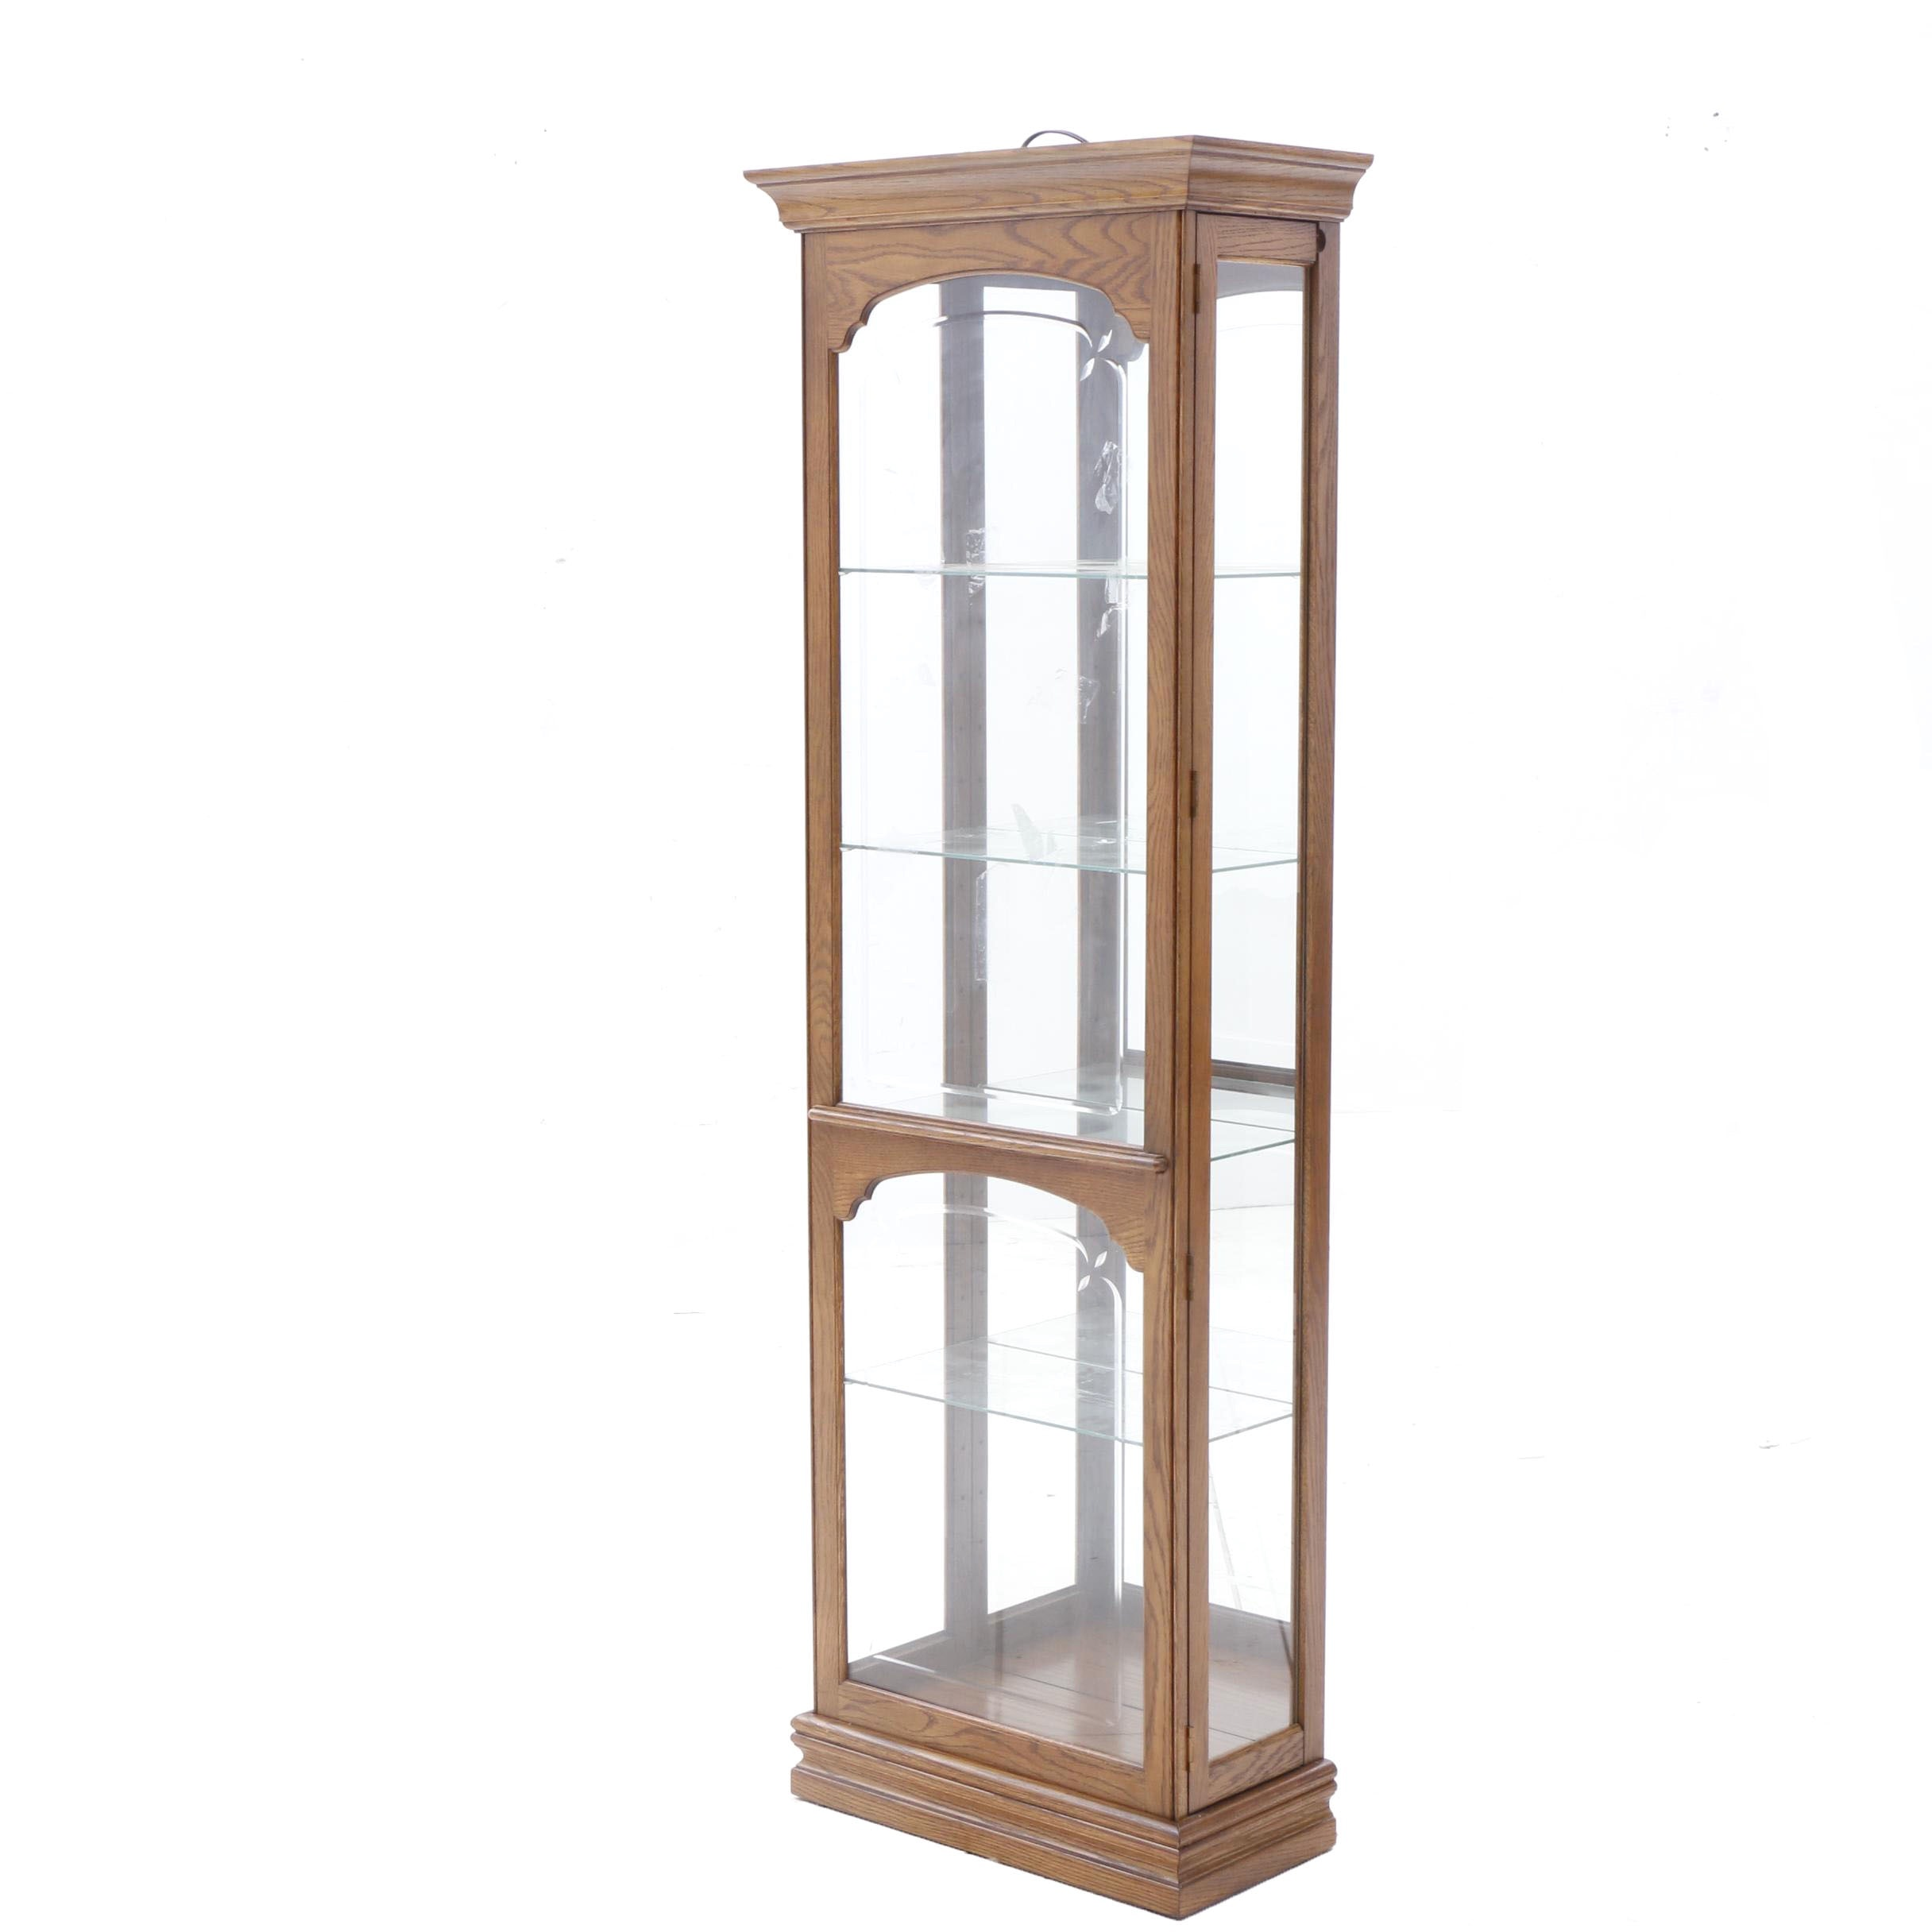 Phillips Reinisch Company Lighted Oak Display or Curio Cabinet